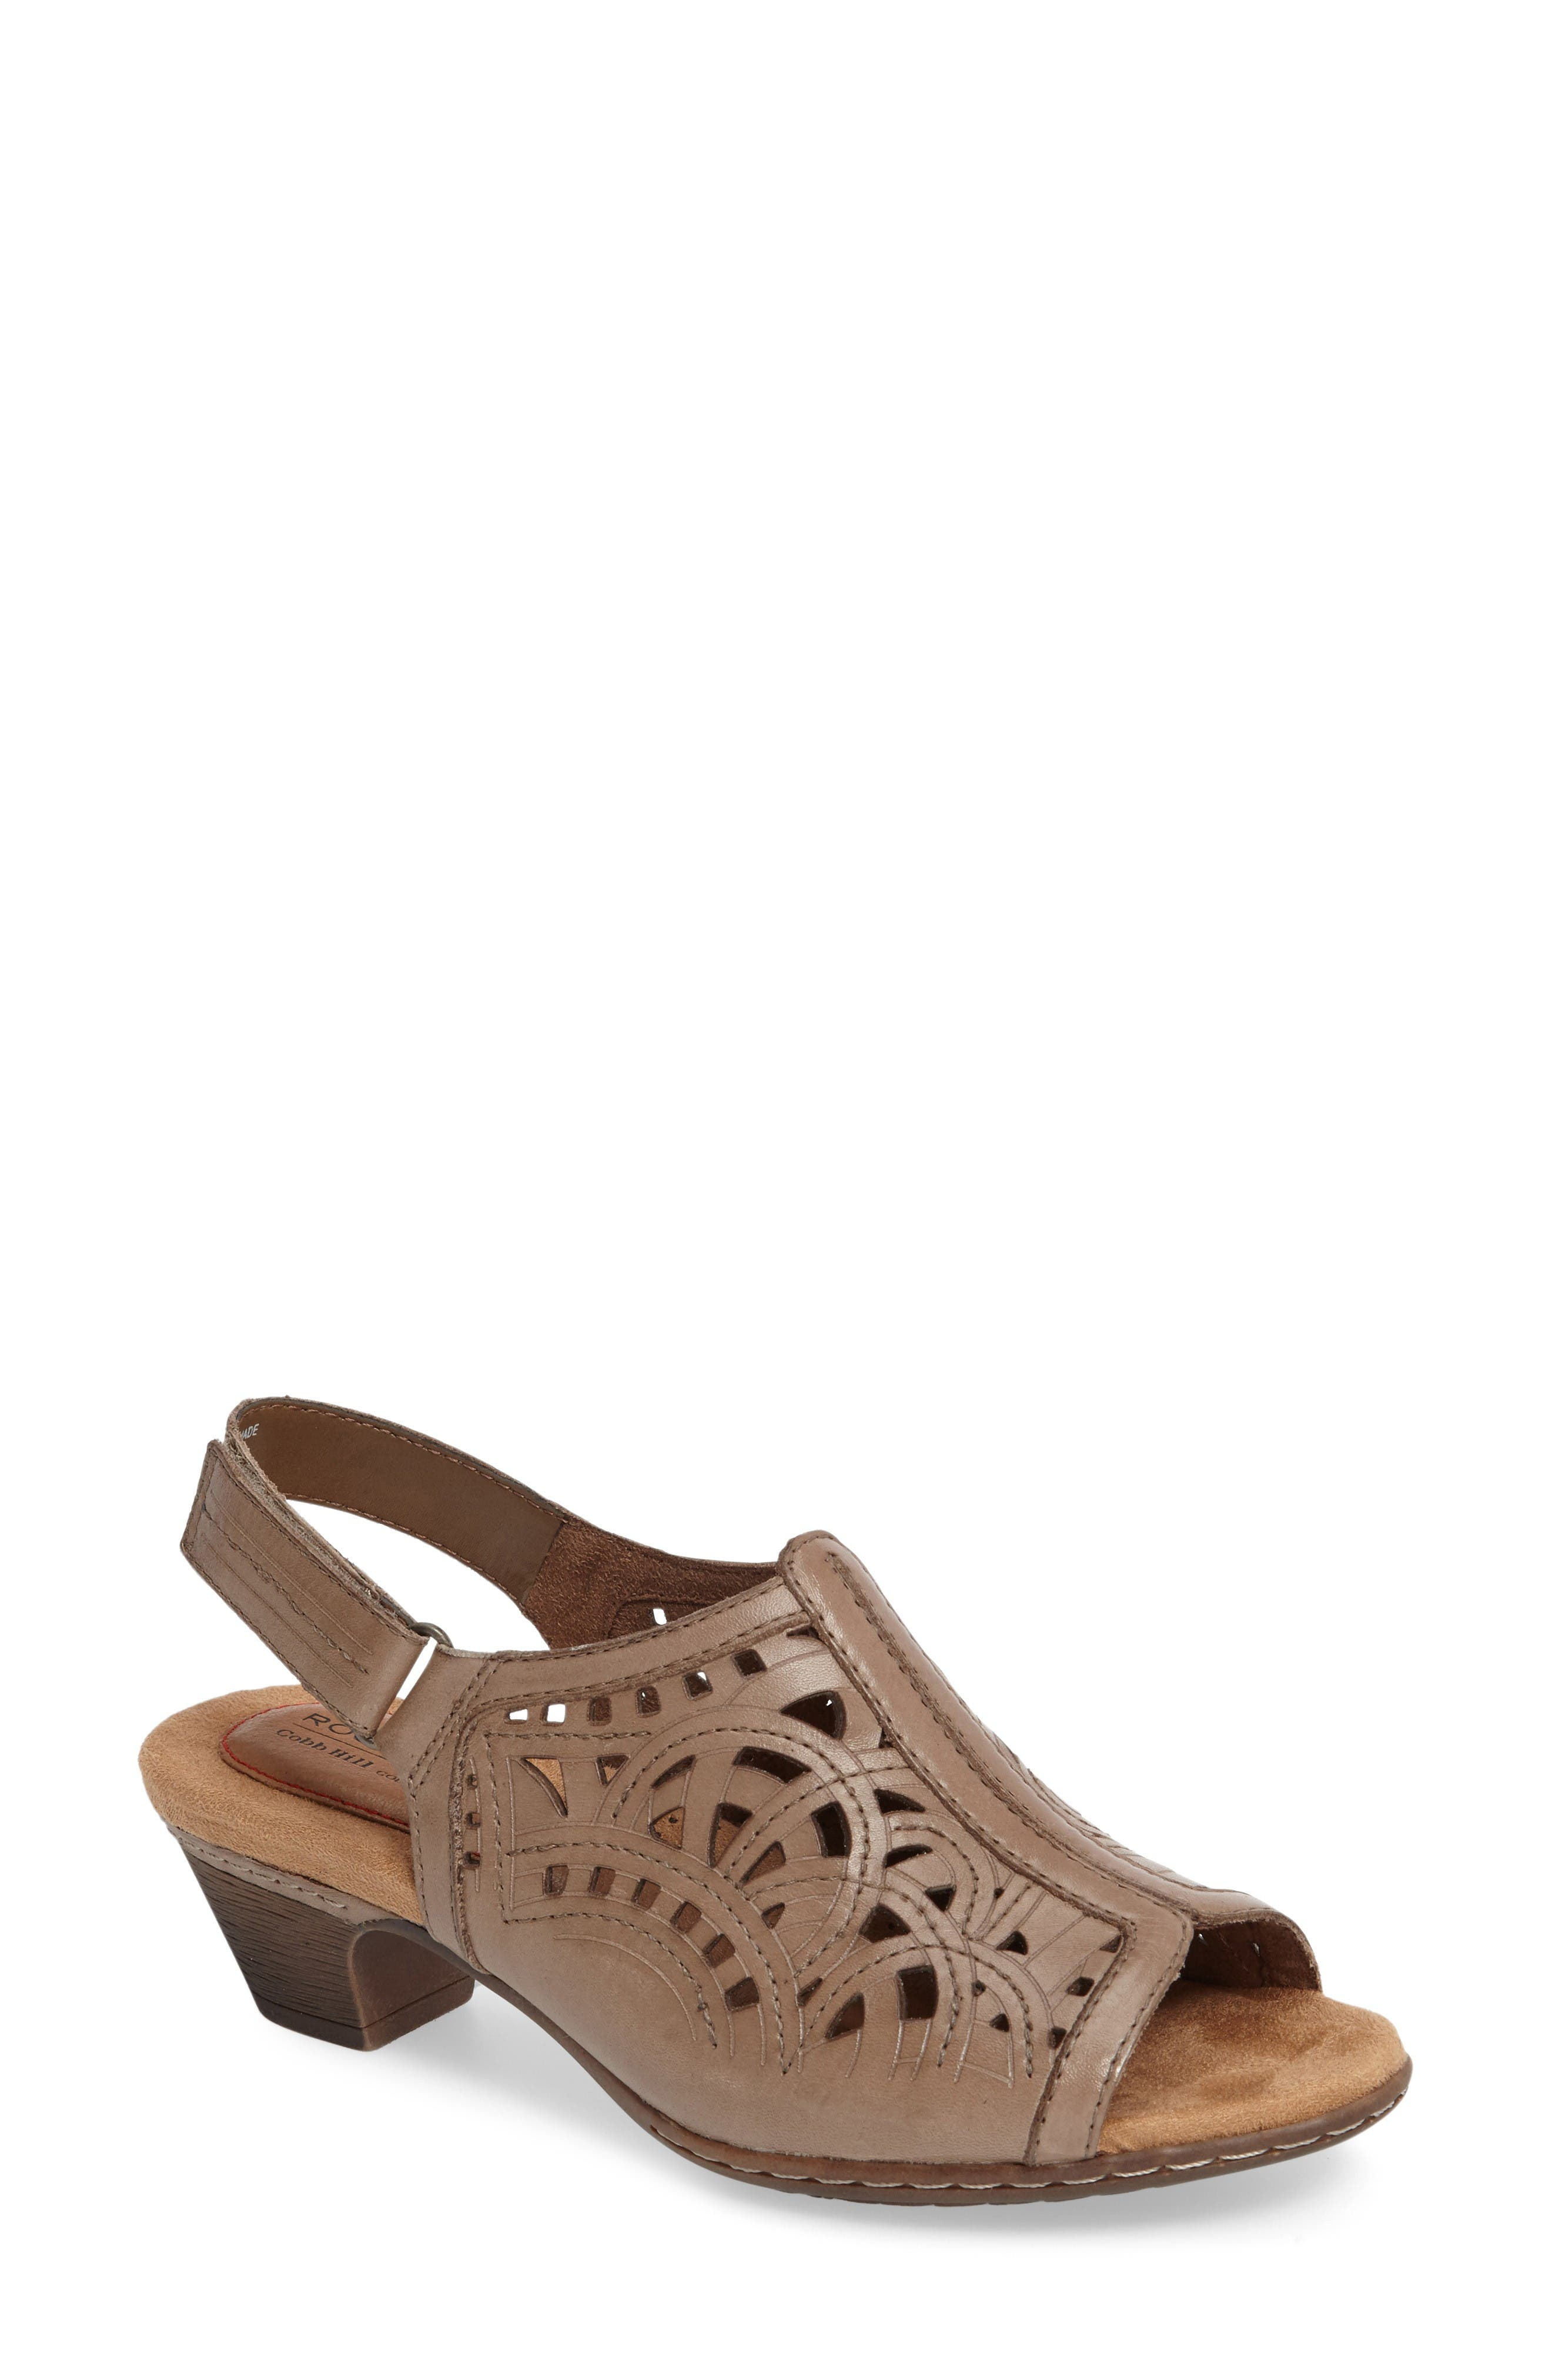 Abbott Slingback Sandal,                             Main thumbnail 1, color,                             Khaki Leather